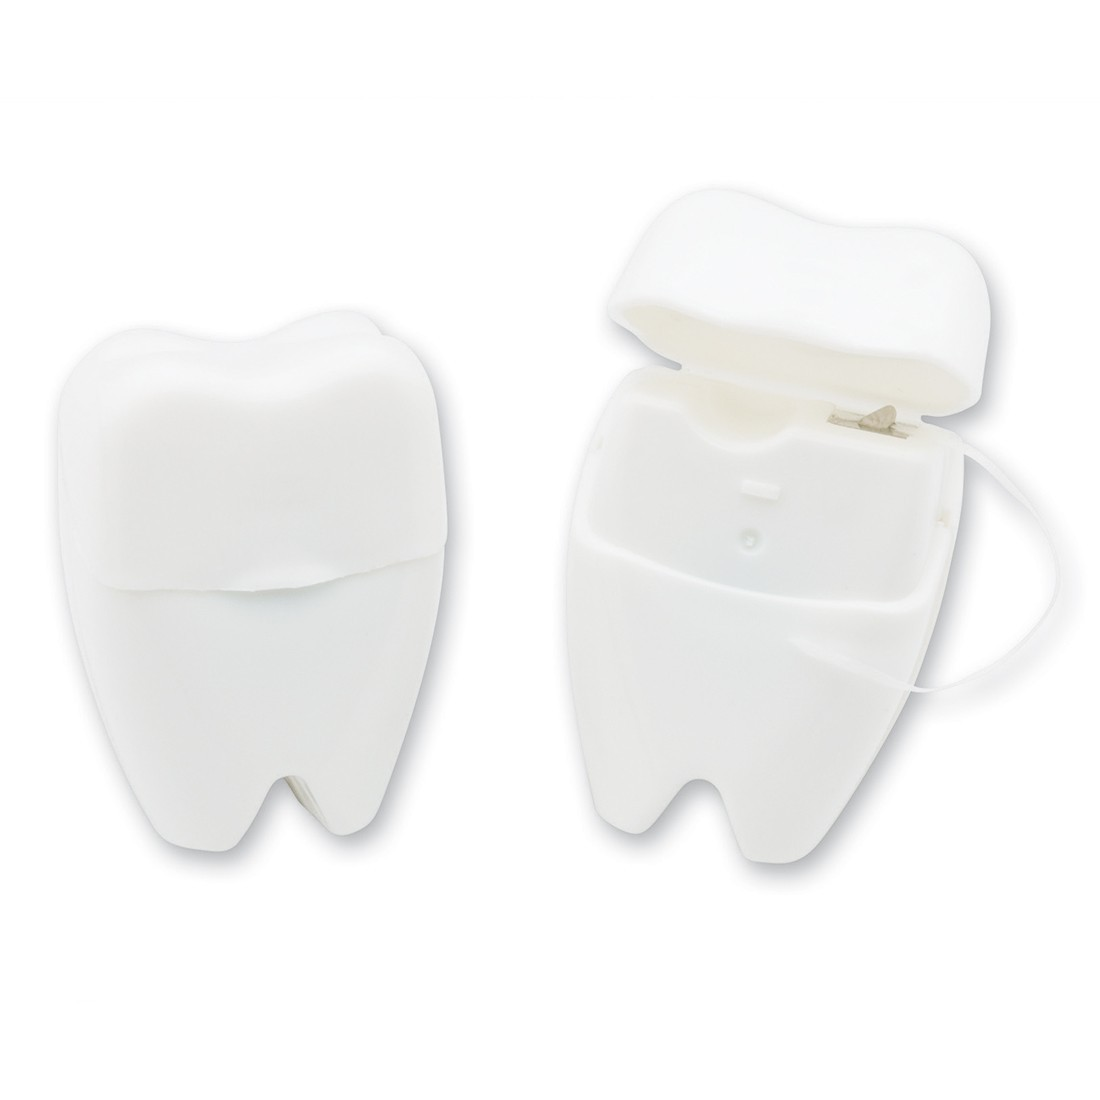 Tooth Shaped Dental Floss [image]